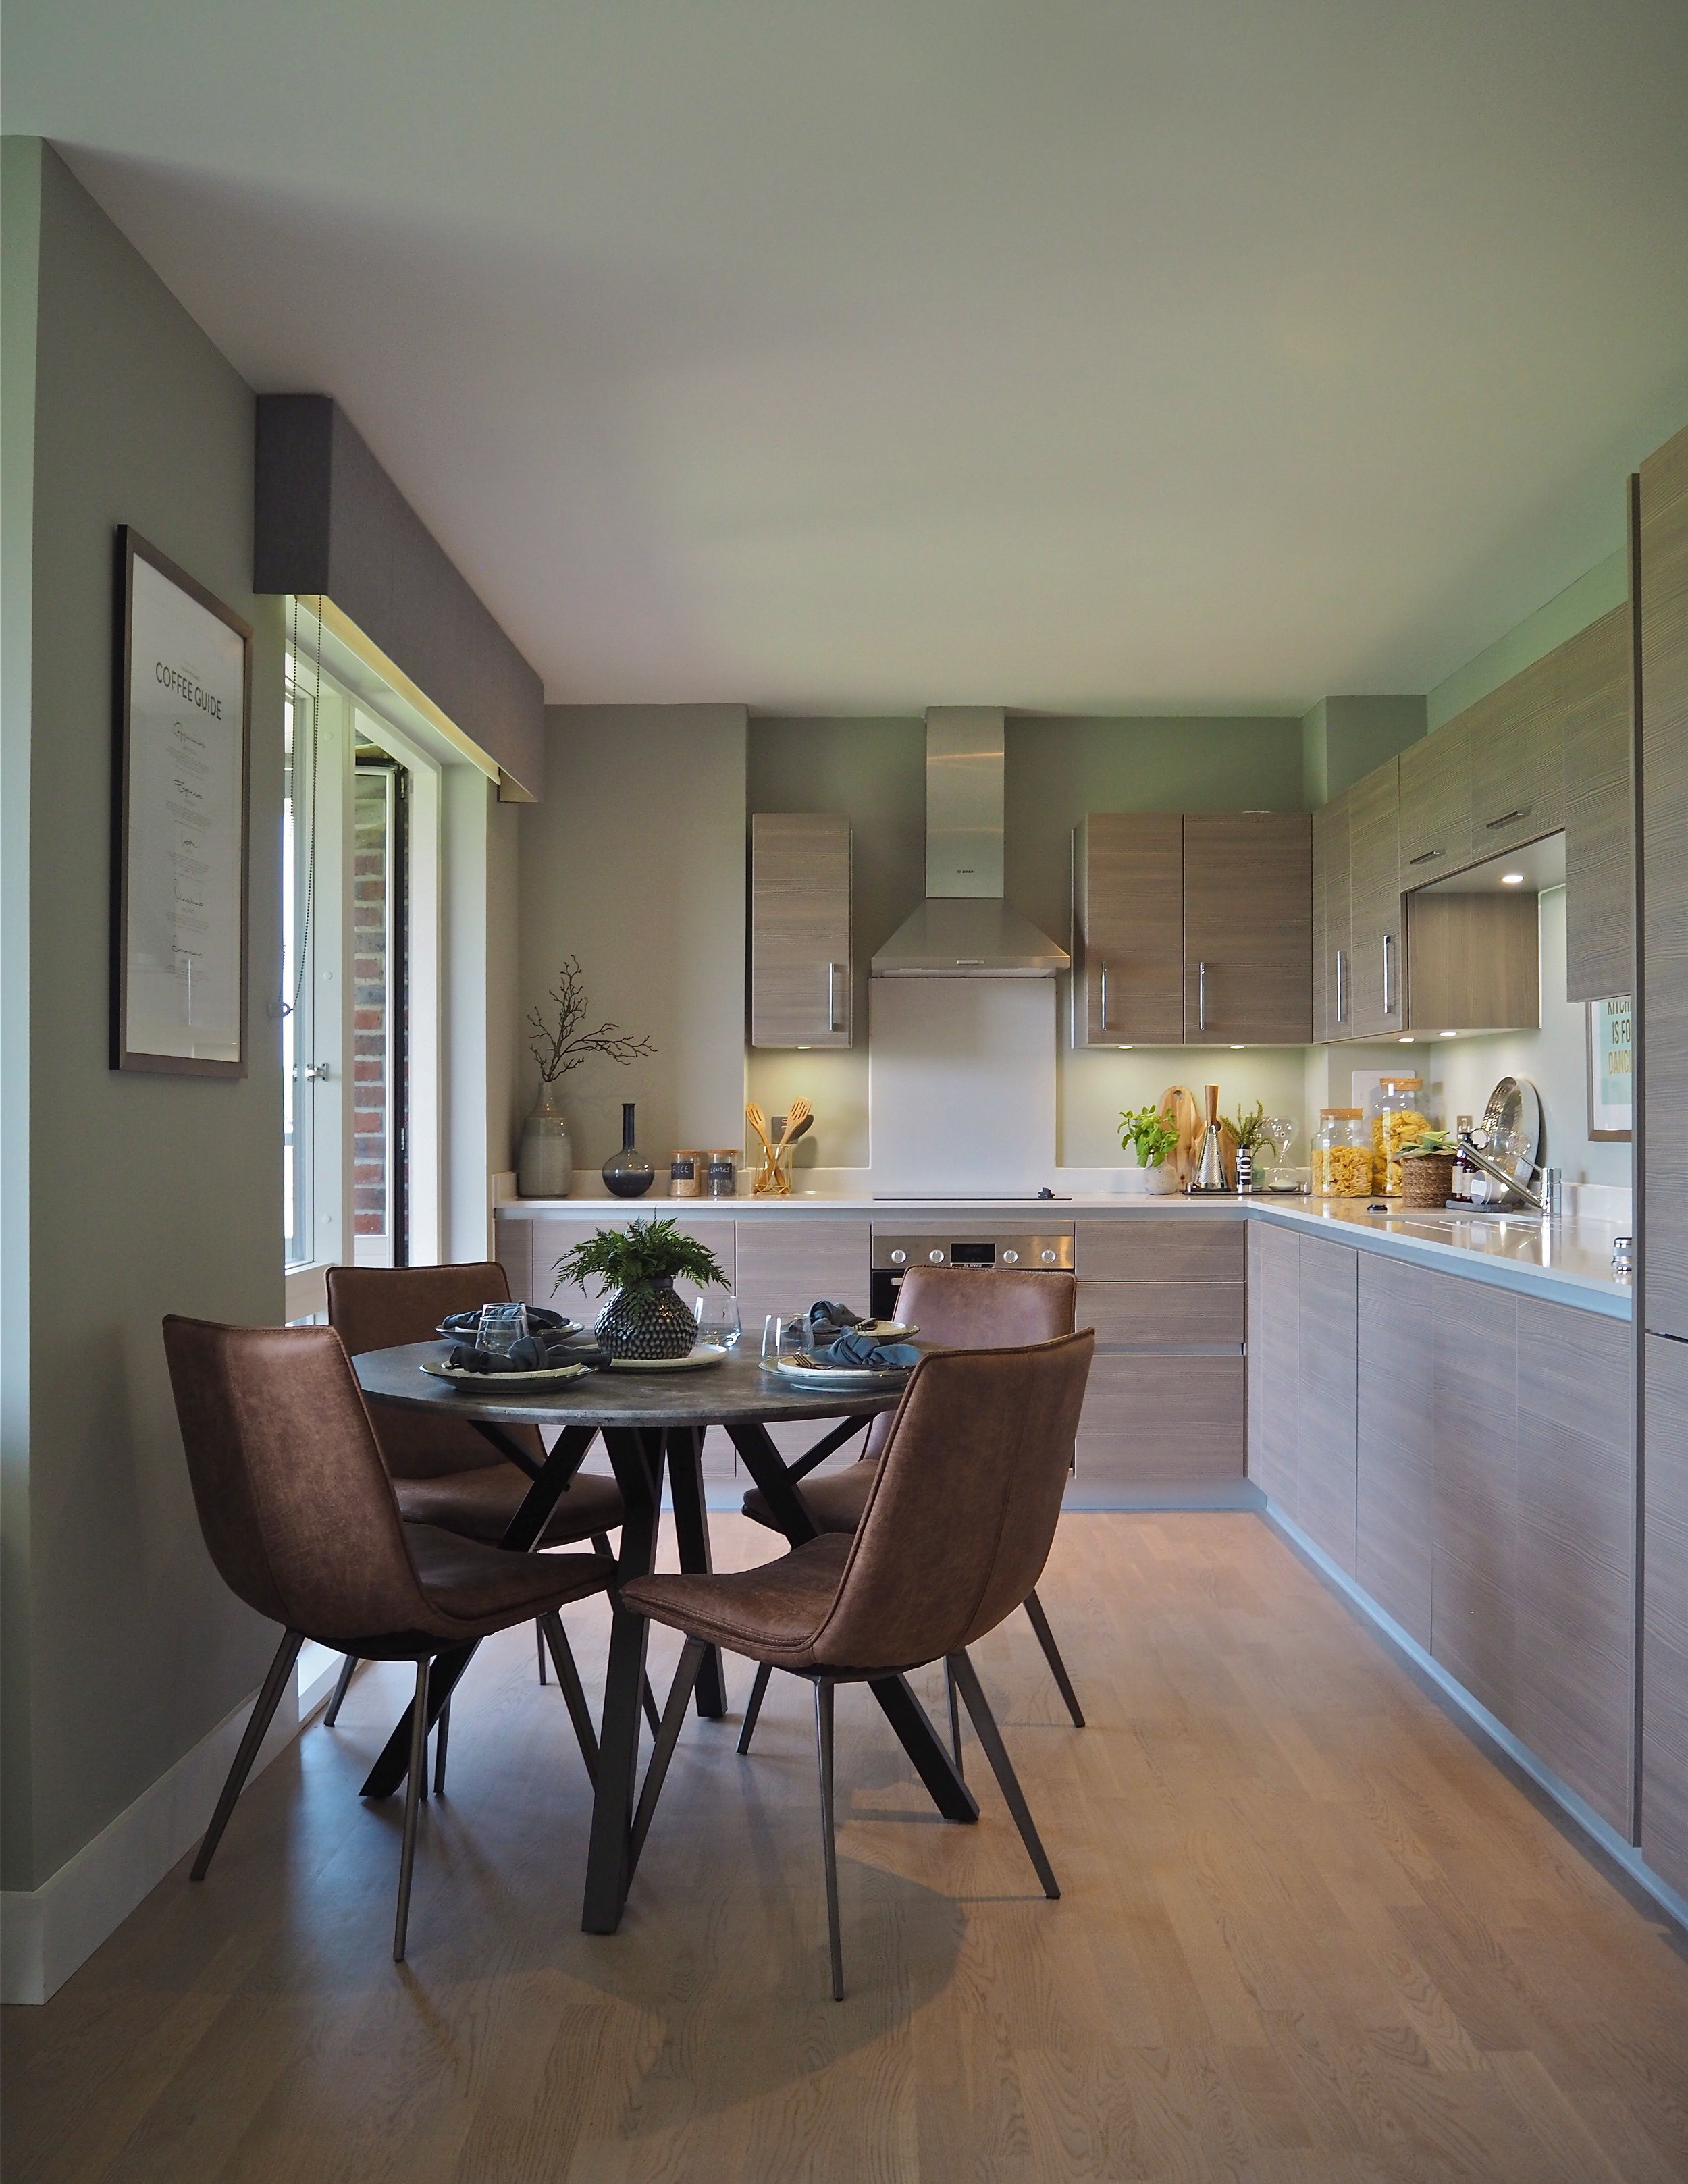 How To Make A New Build Feel Homely And Full Of Character